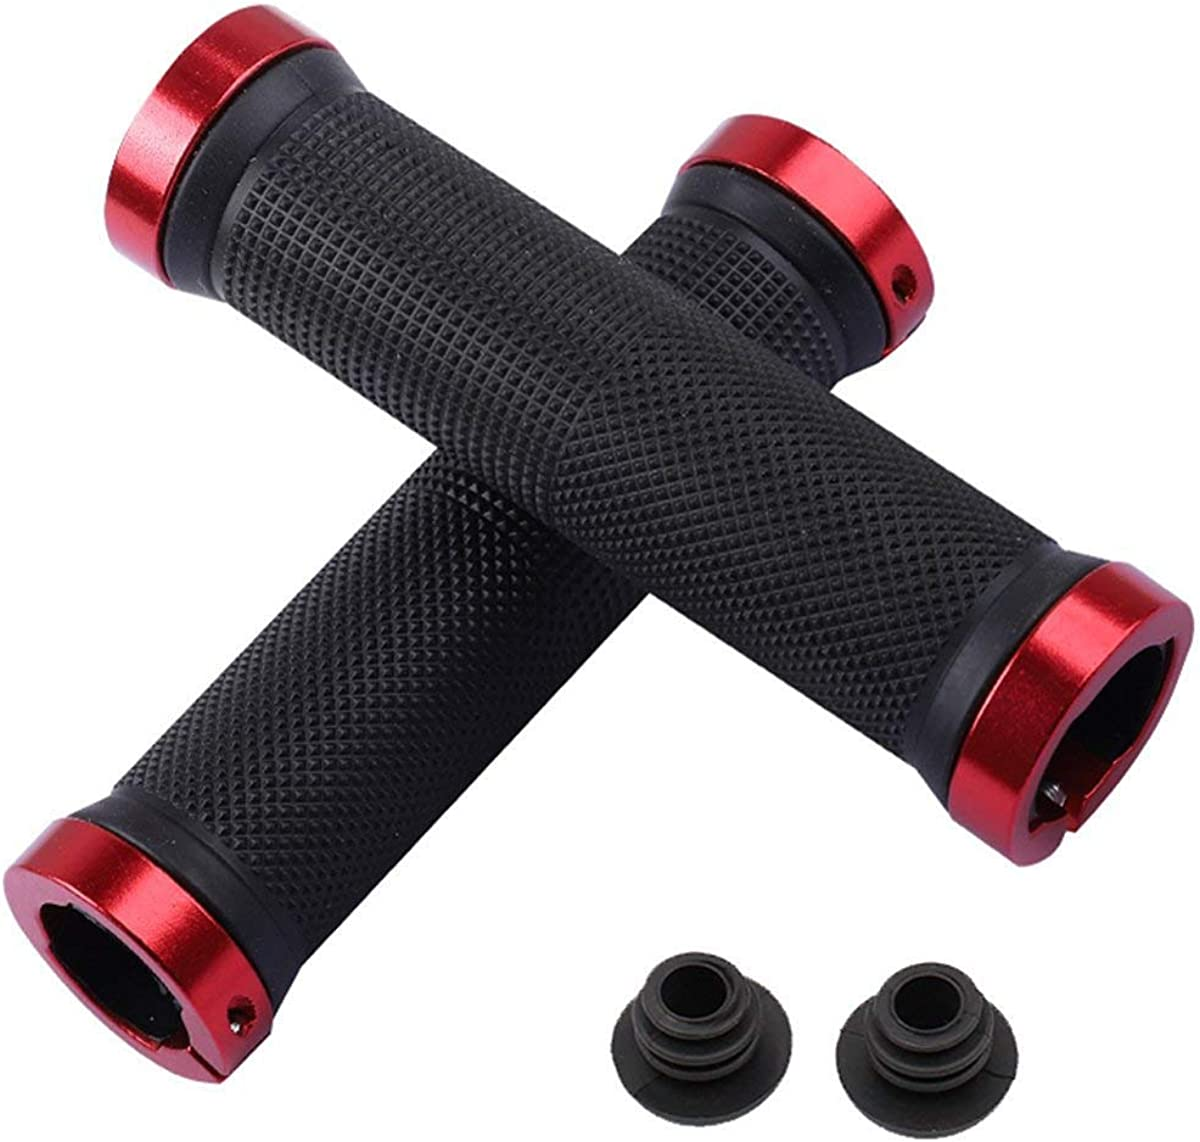 Bicycle Grips,Double Lock on Locking Bicycle Handlebar Grips Rubber Comfortable Bike Grips Bicycle Mountain BMX